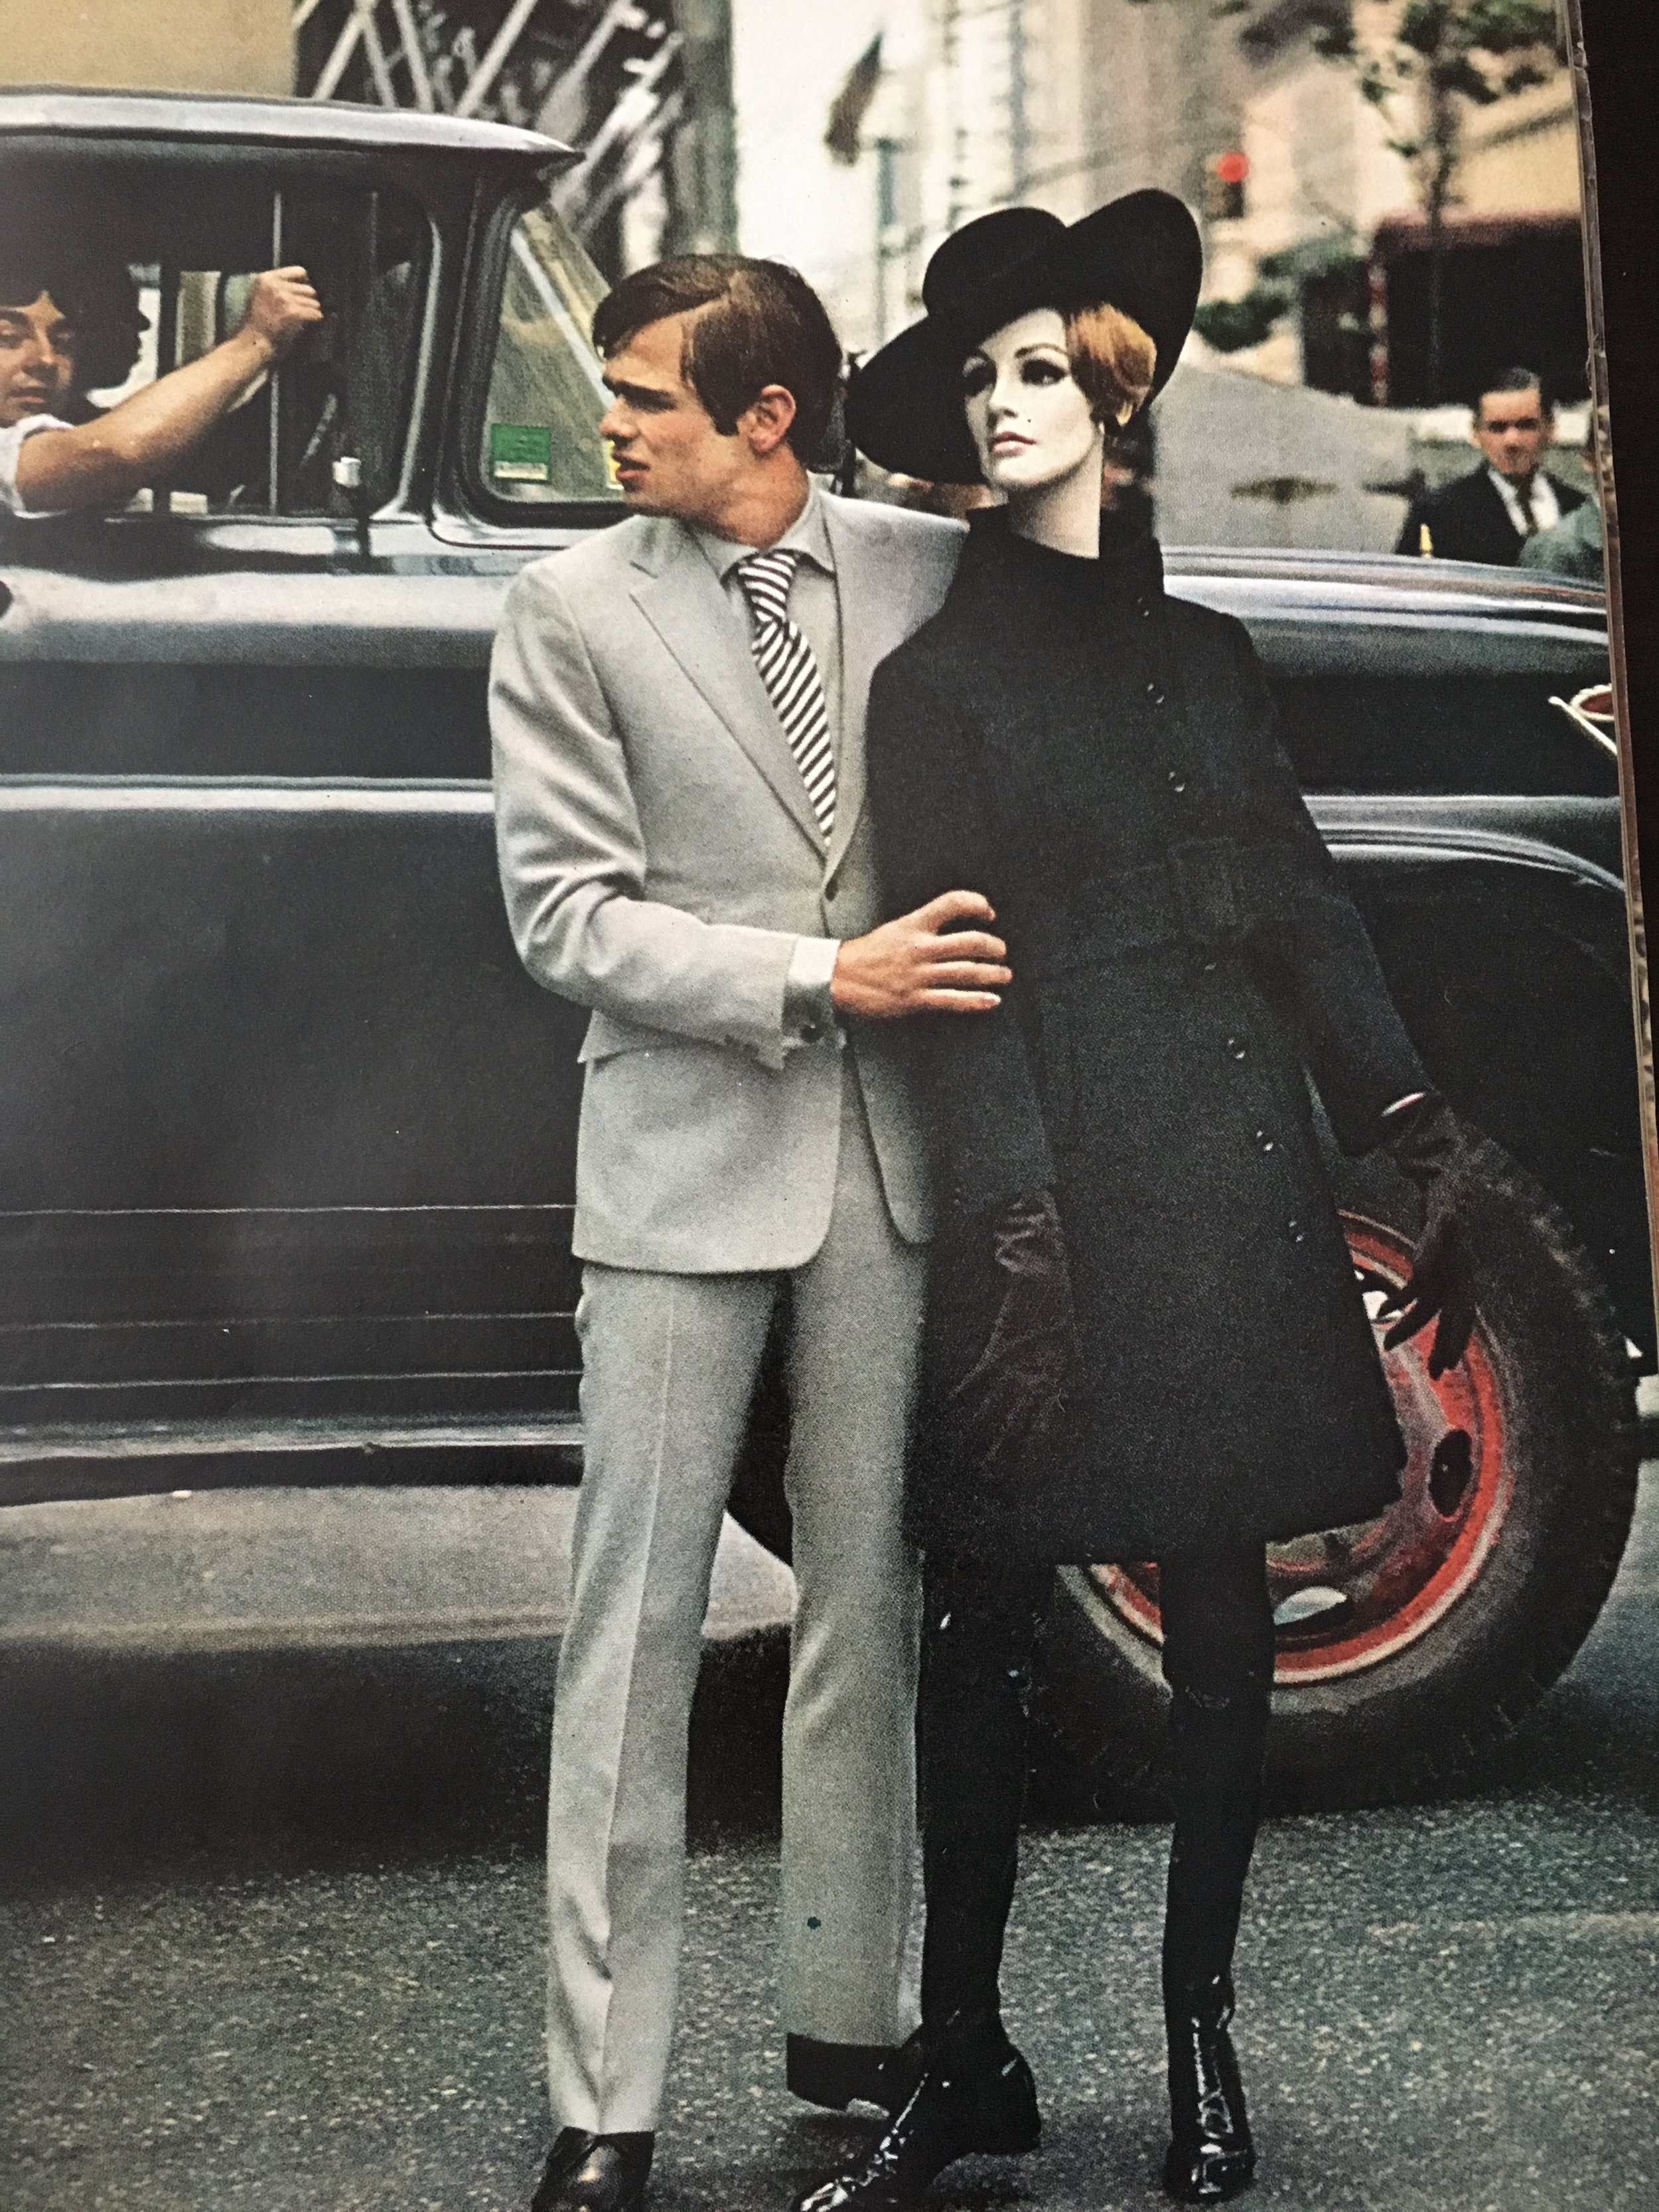 The all-black look. She's in ebon from hat brim to boot, her wool coat high-belted. He's in pearl gray - suit and shirt.